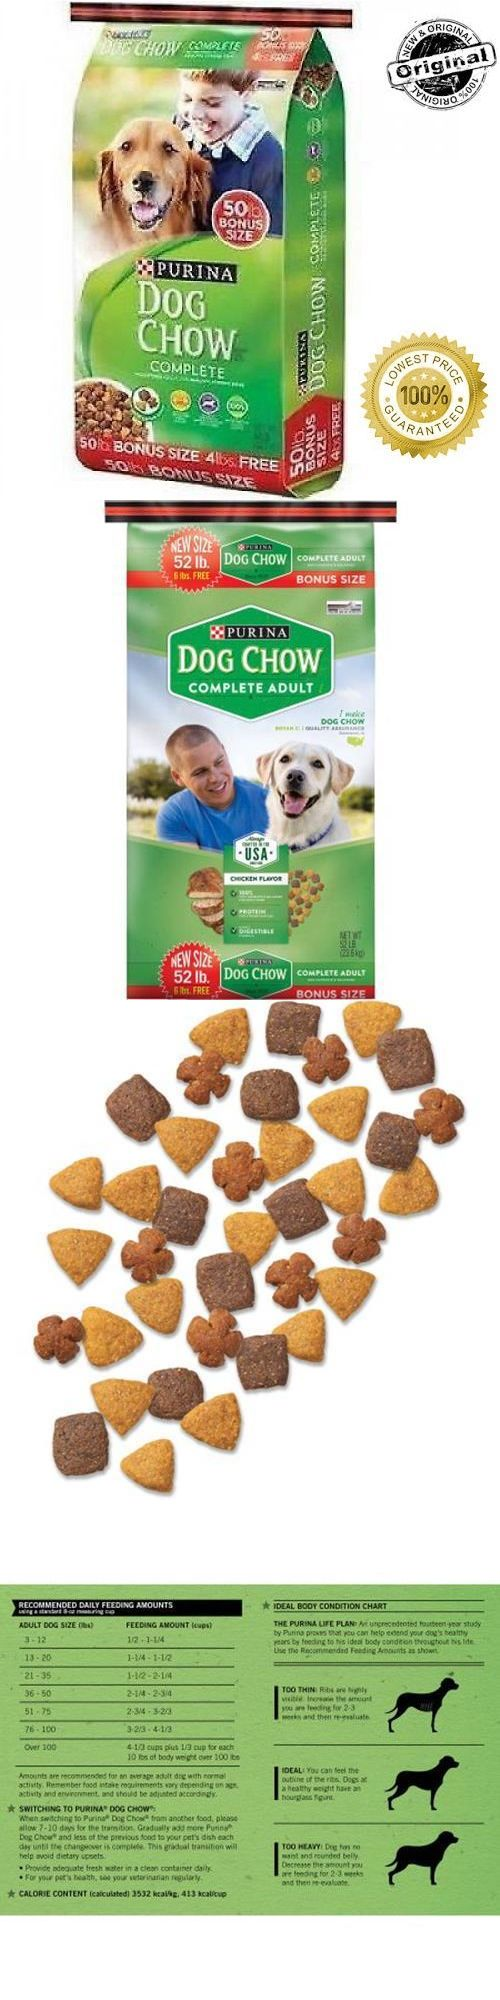 Dog Food 66780: Purina Dog Chow Complete Dry Food Kibble 52 Lb. High Quality Protein Bulk Bag -> BUY IT NOW ONLY: $35.95 on eBay!